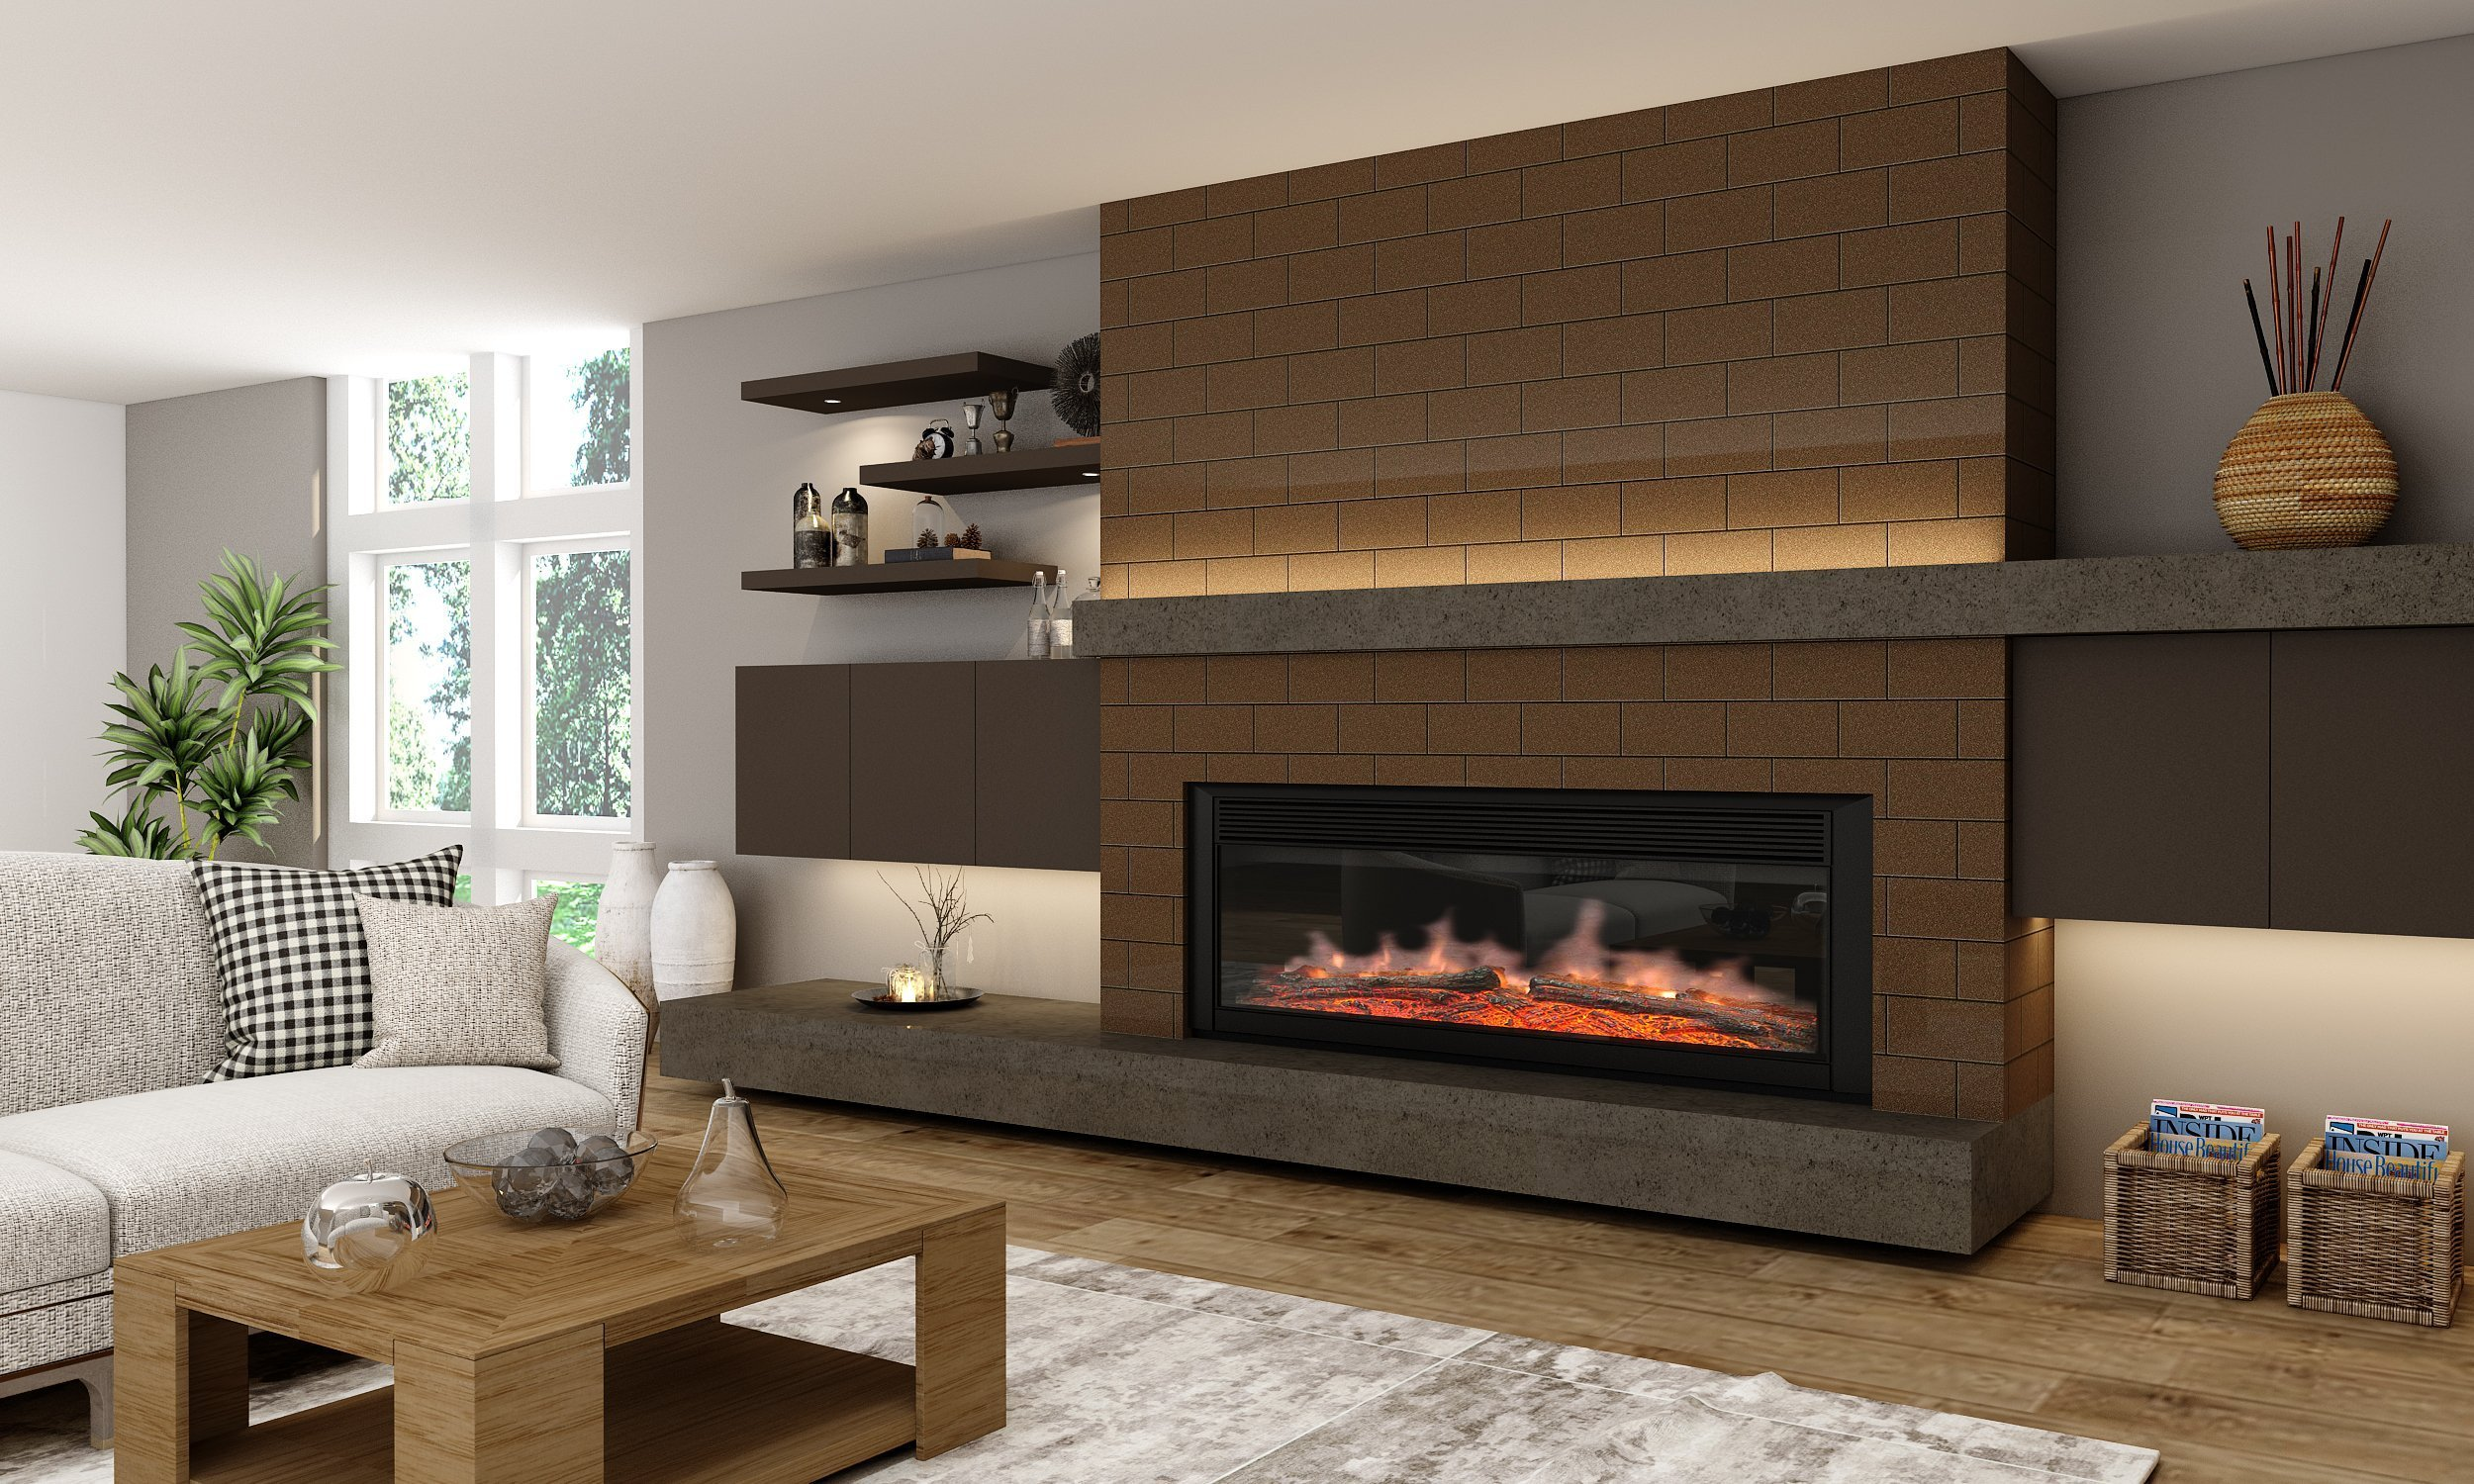 Gloss Living Room Alcove Design With Floating Shelves in Onyx Grey Finish